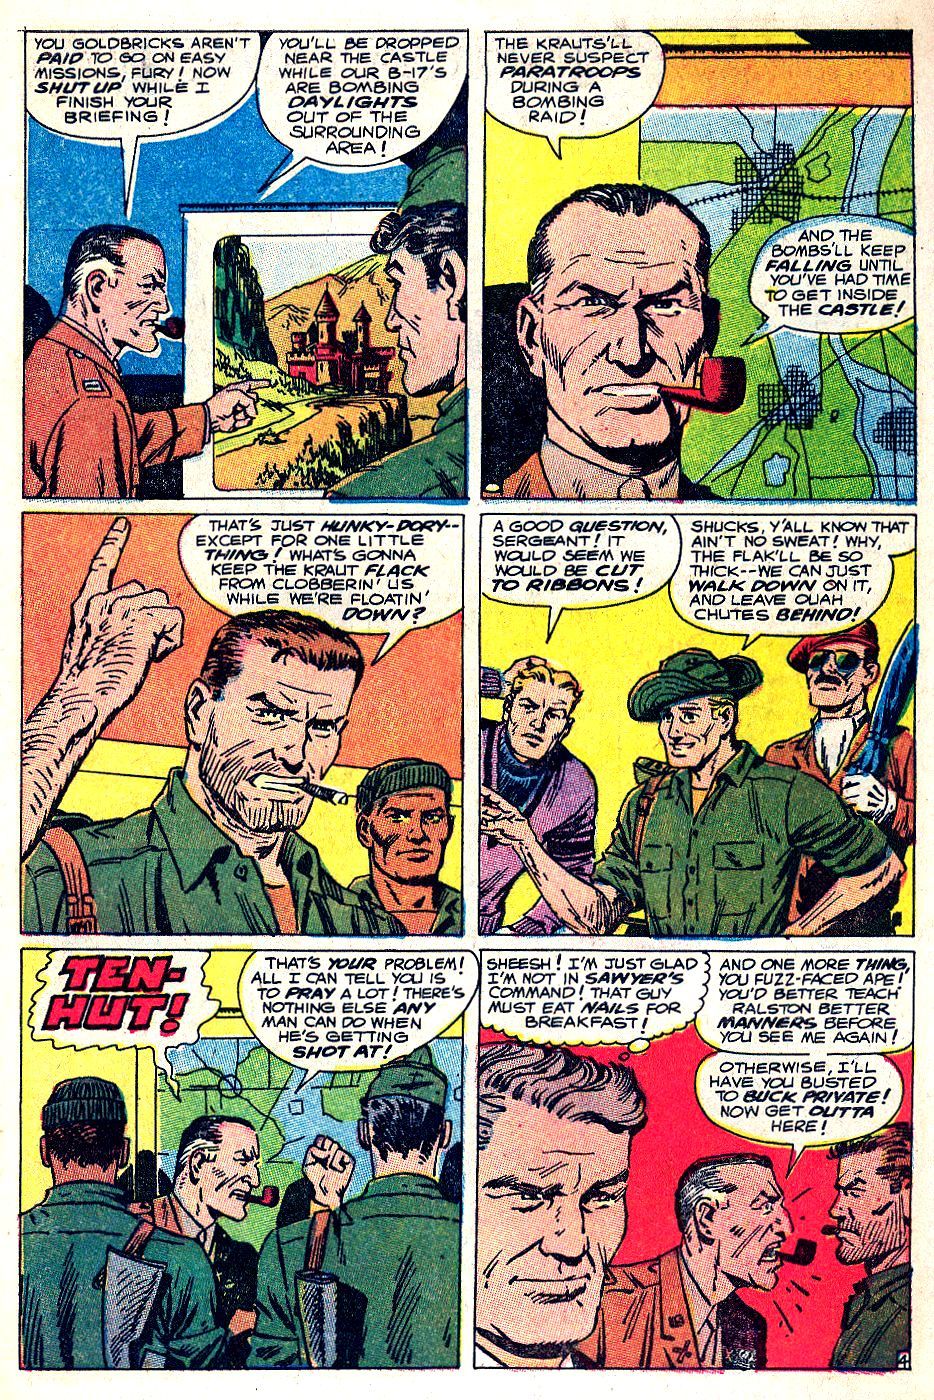 Read online Sgt. Fury comic -  Issue #53 - 7